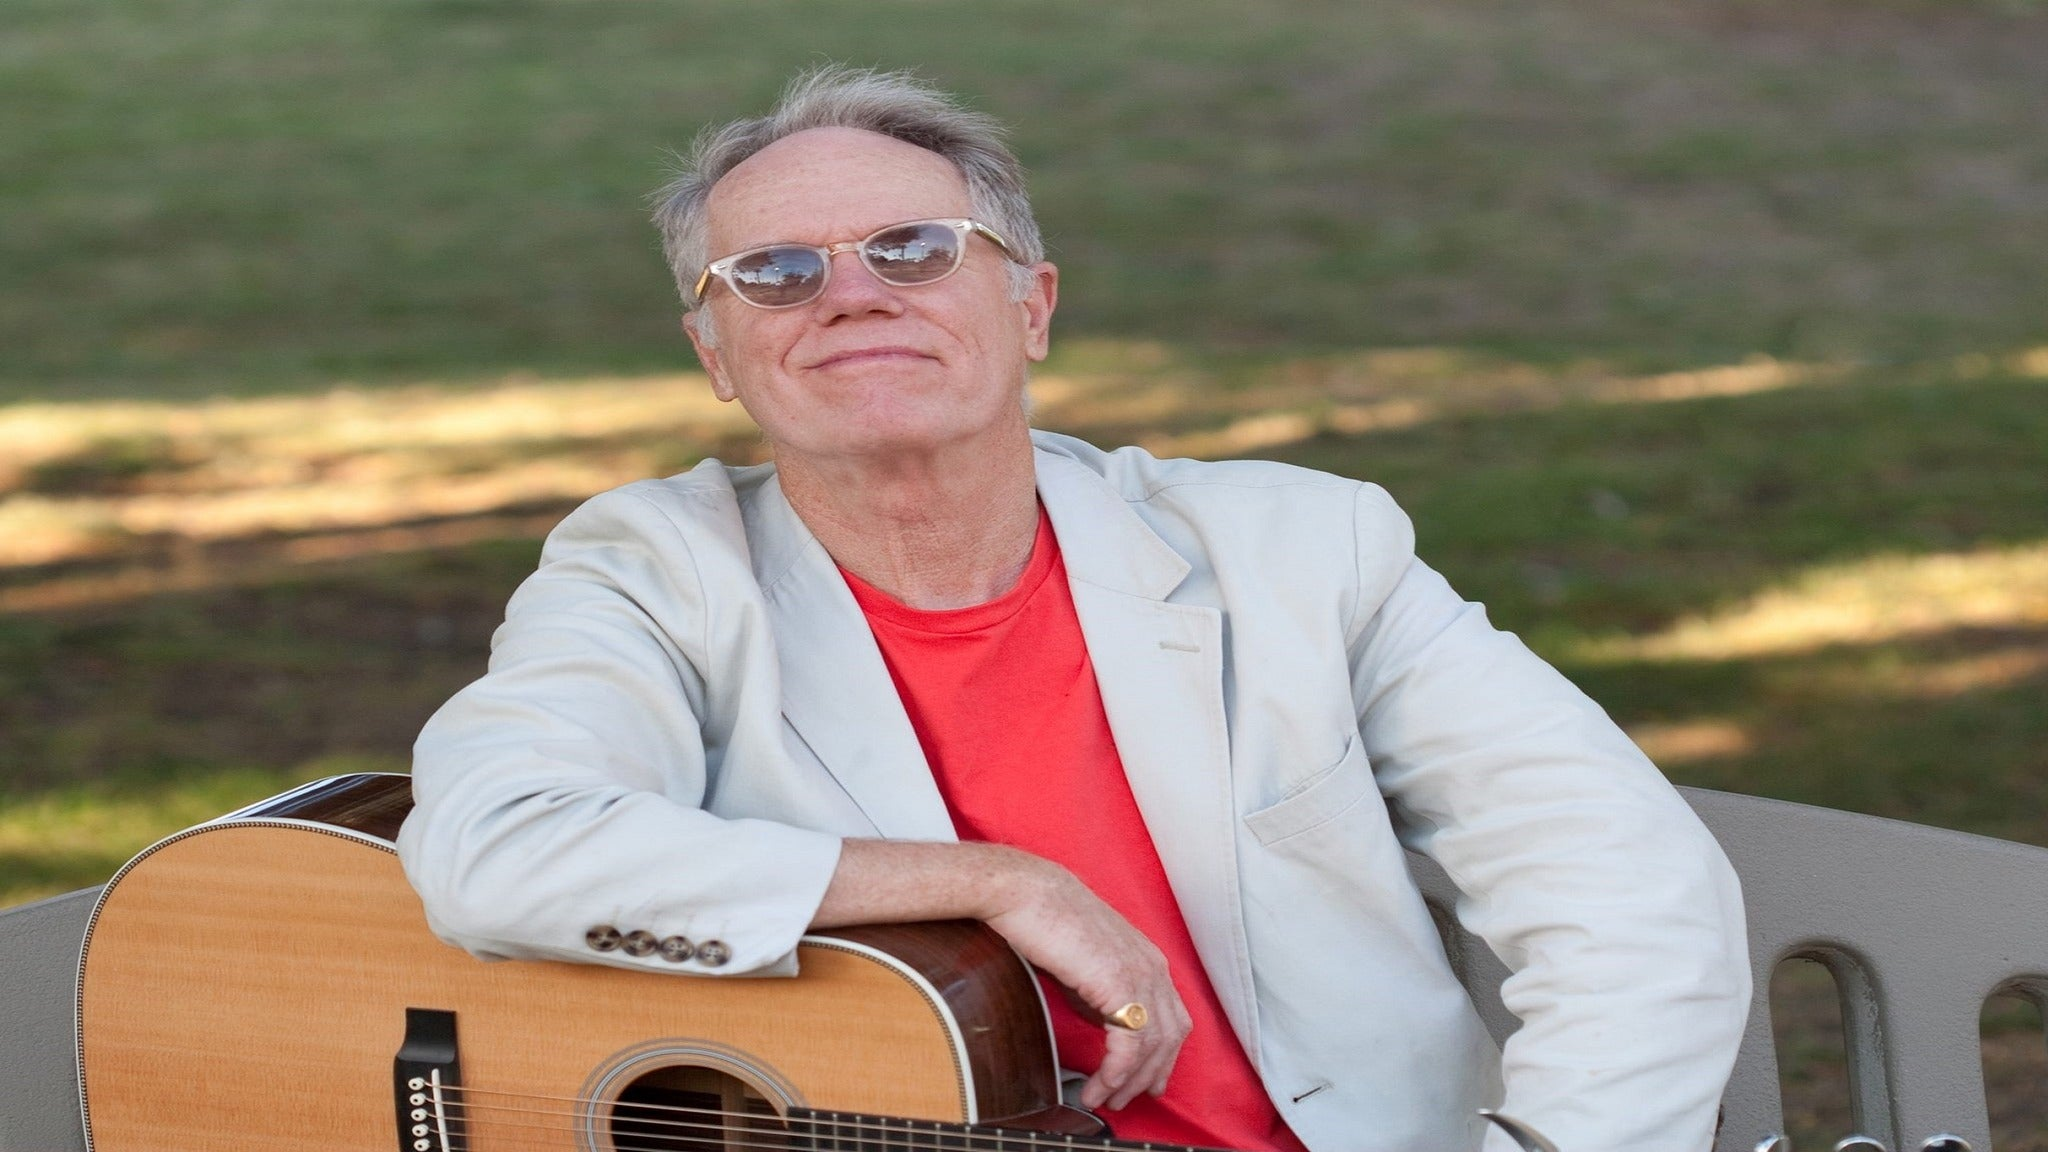 Loudon Wainwright III at Belly Up Tavern